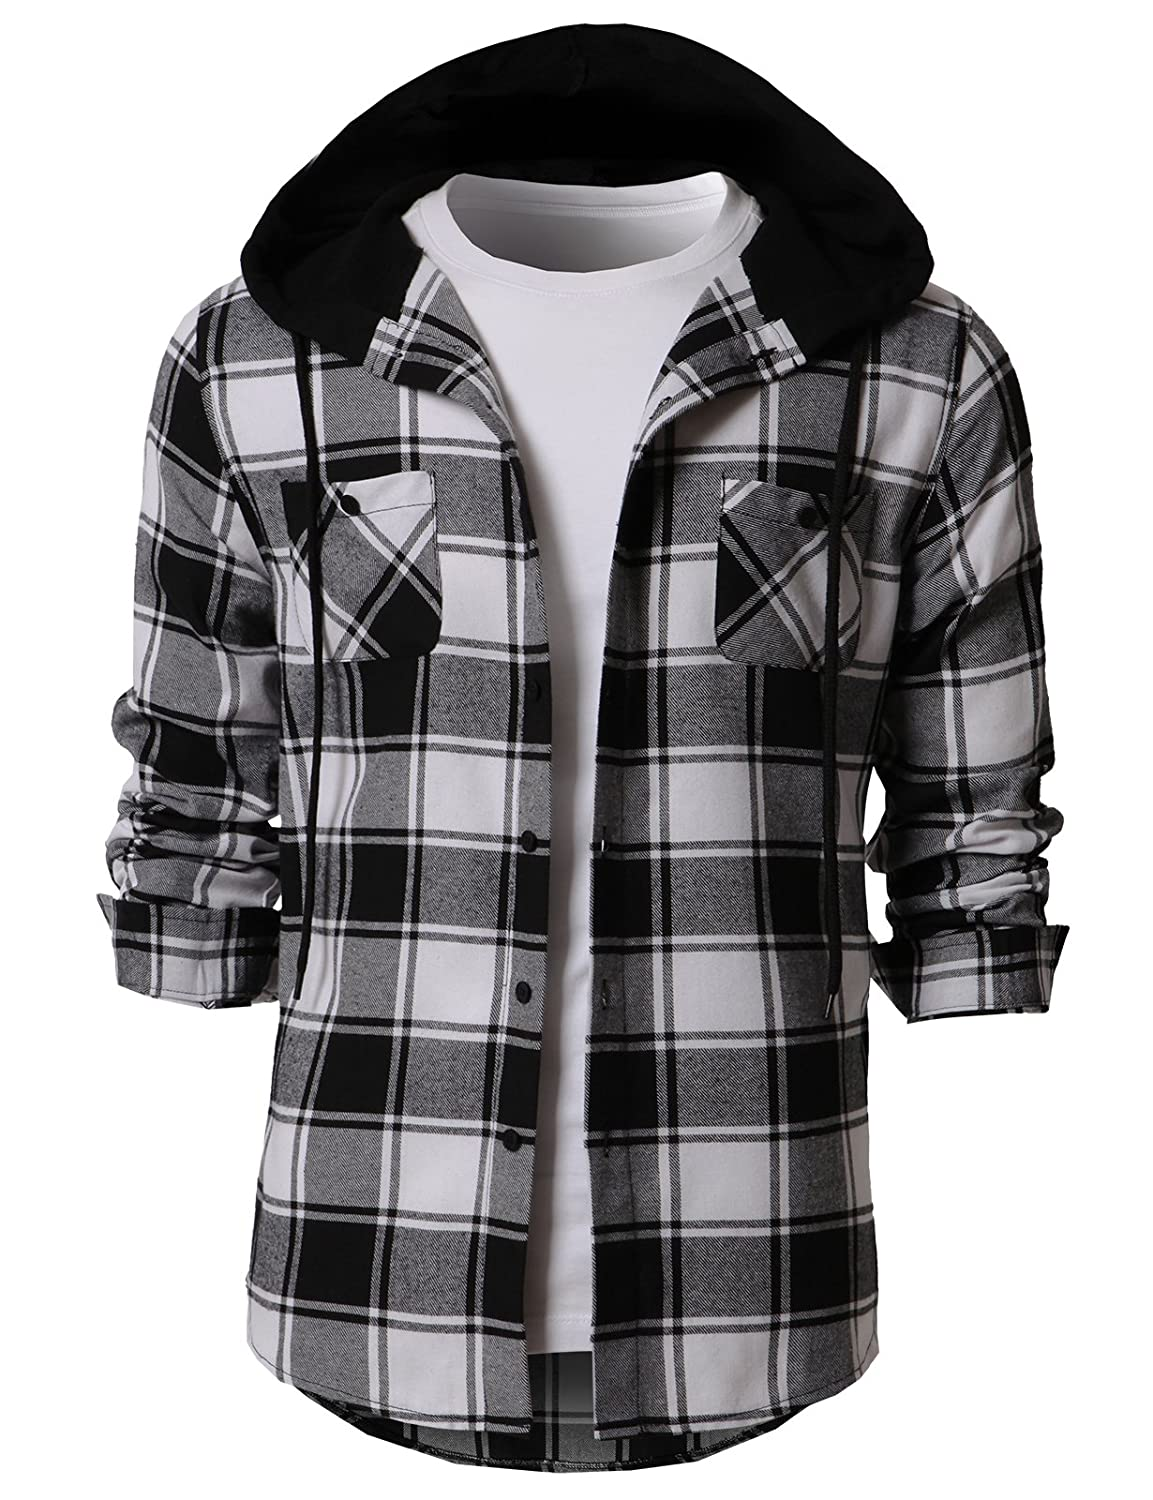 8863f501 H2H Mens Casual Hoodie Jackets Check Patterned Long Sleeve with Front  Pockets at Amazon Men's Clothing store: